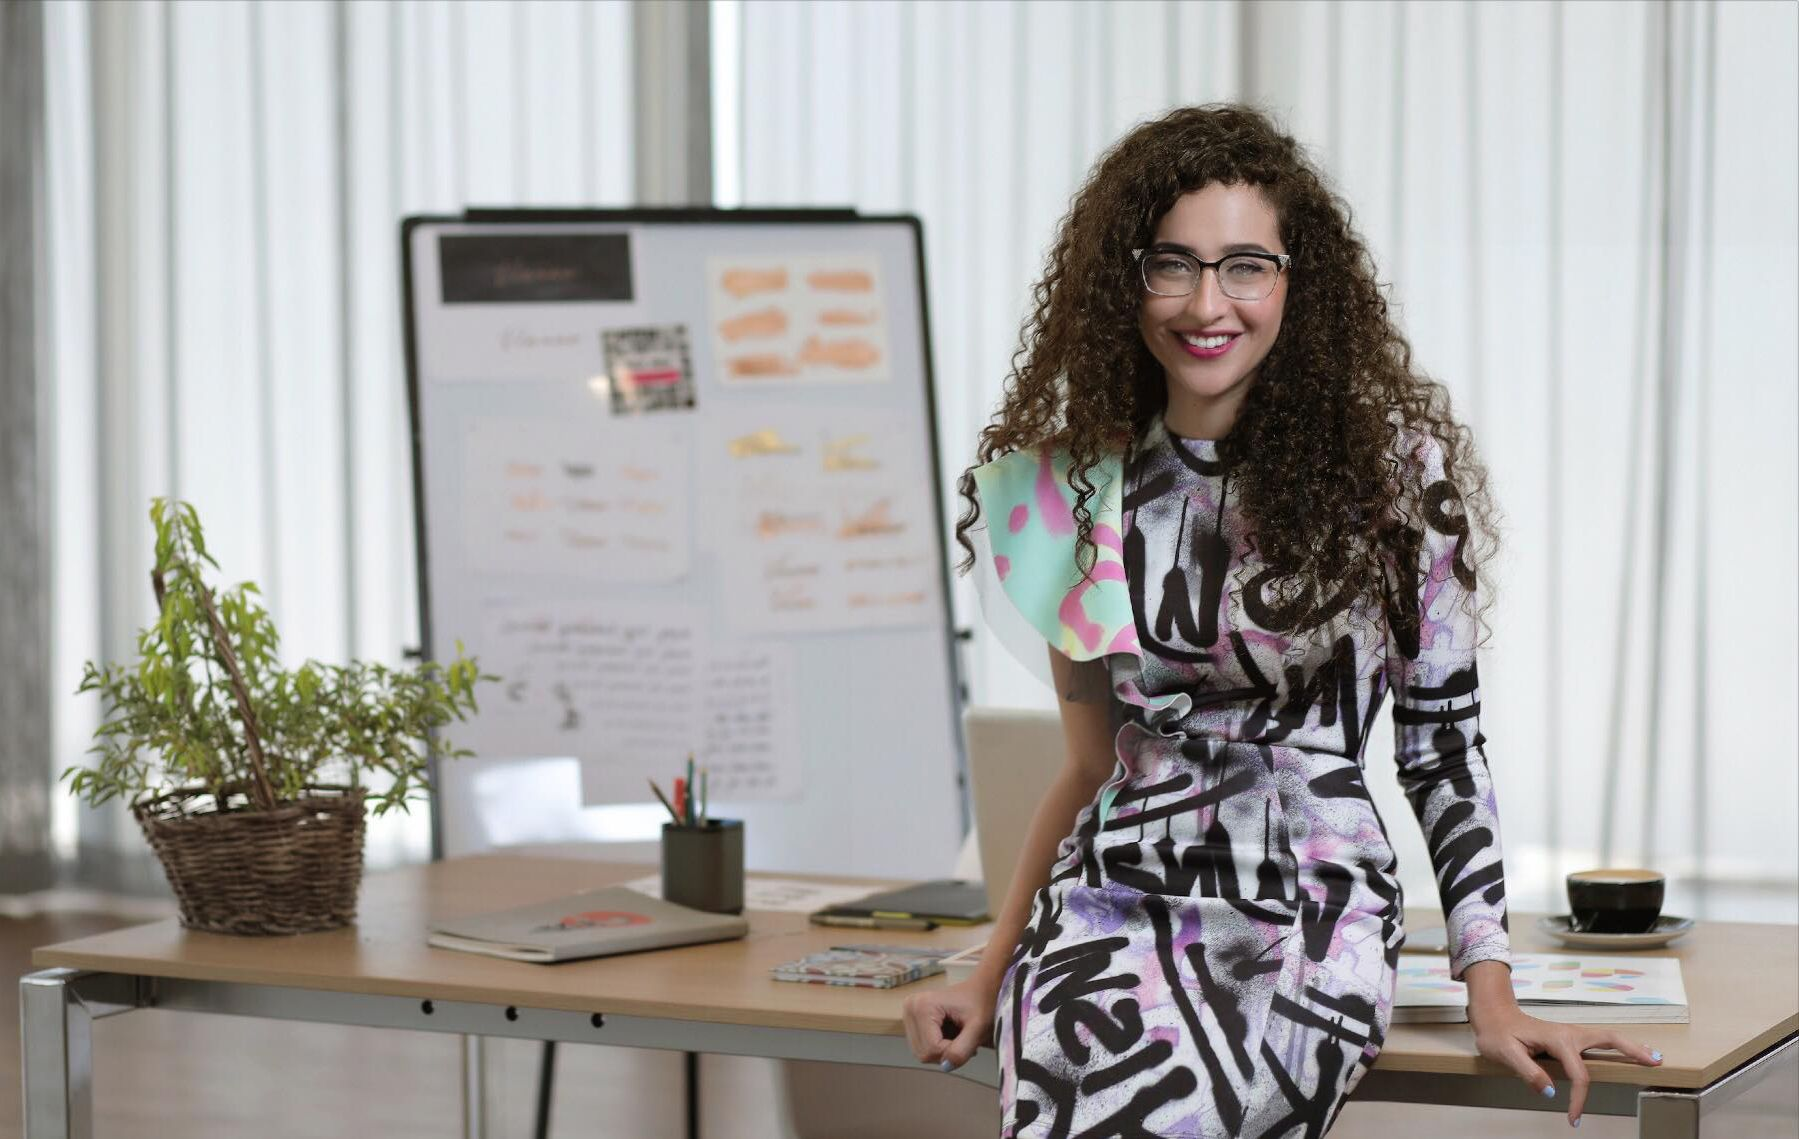 Ghada Wali, an award-winning Egyptian graphic designer who has created an Arabic learning tool